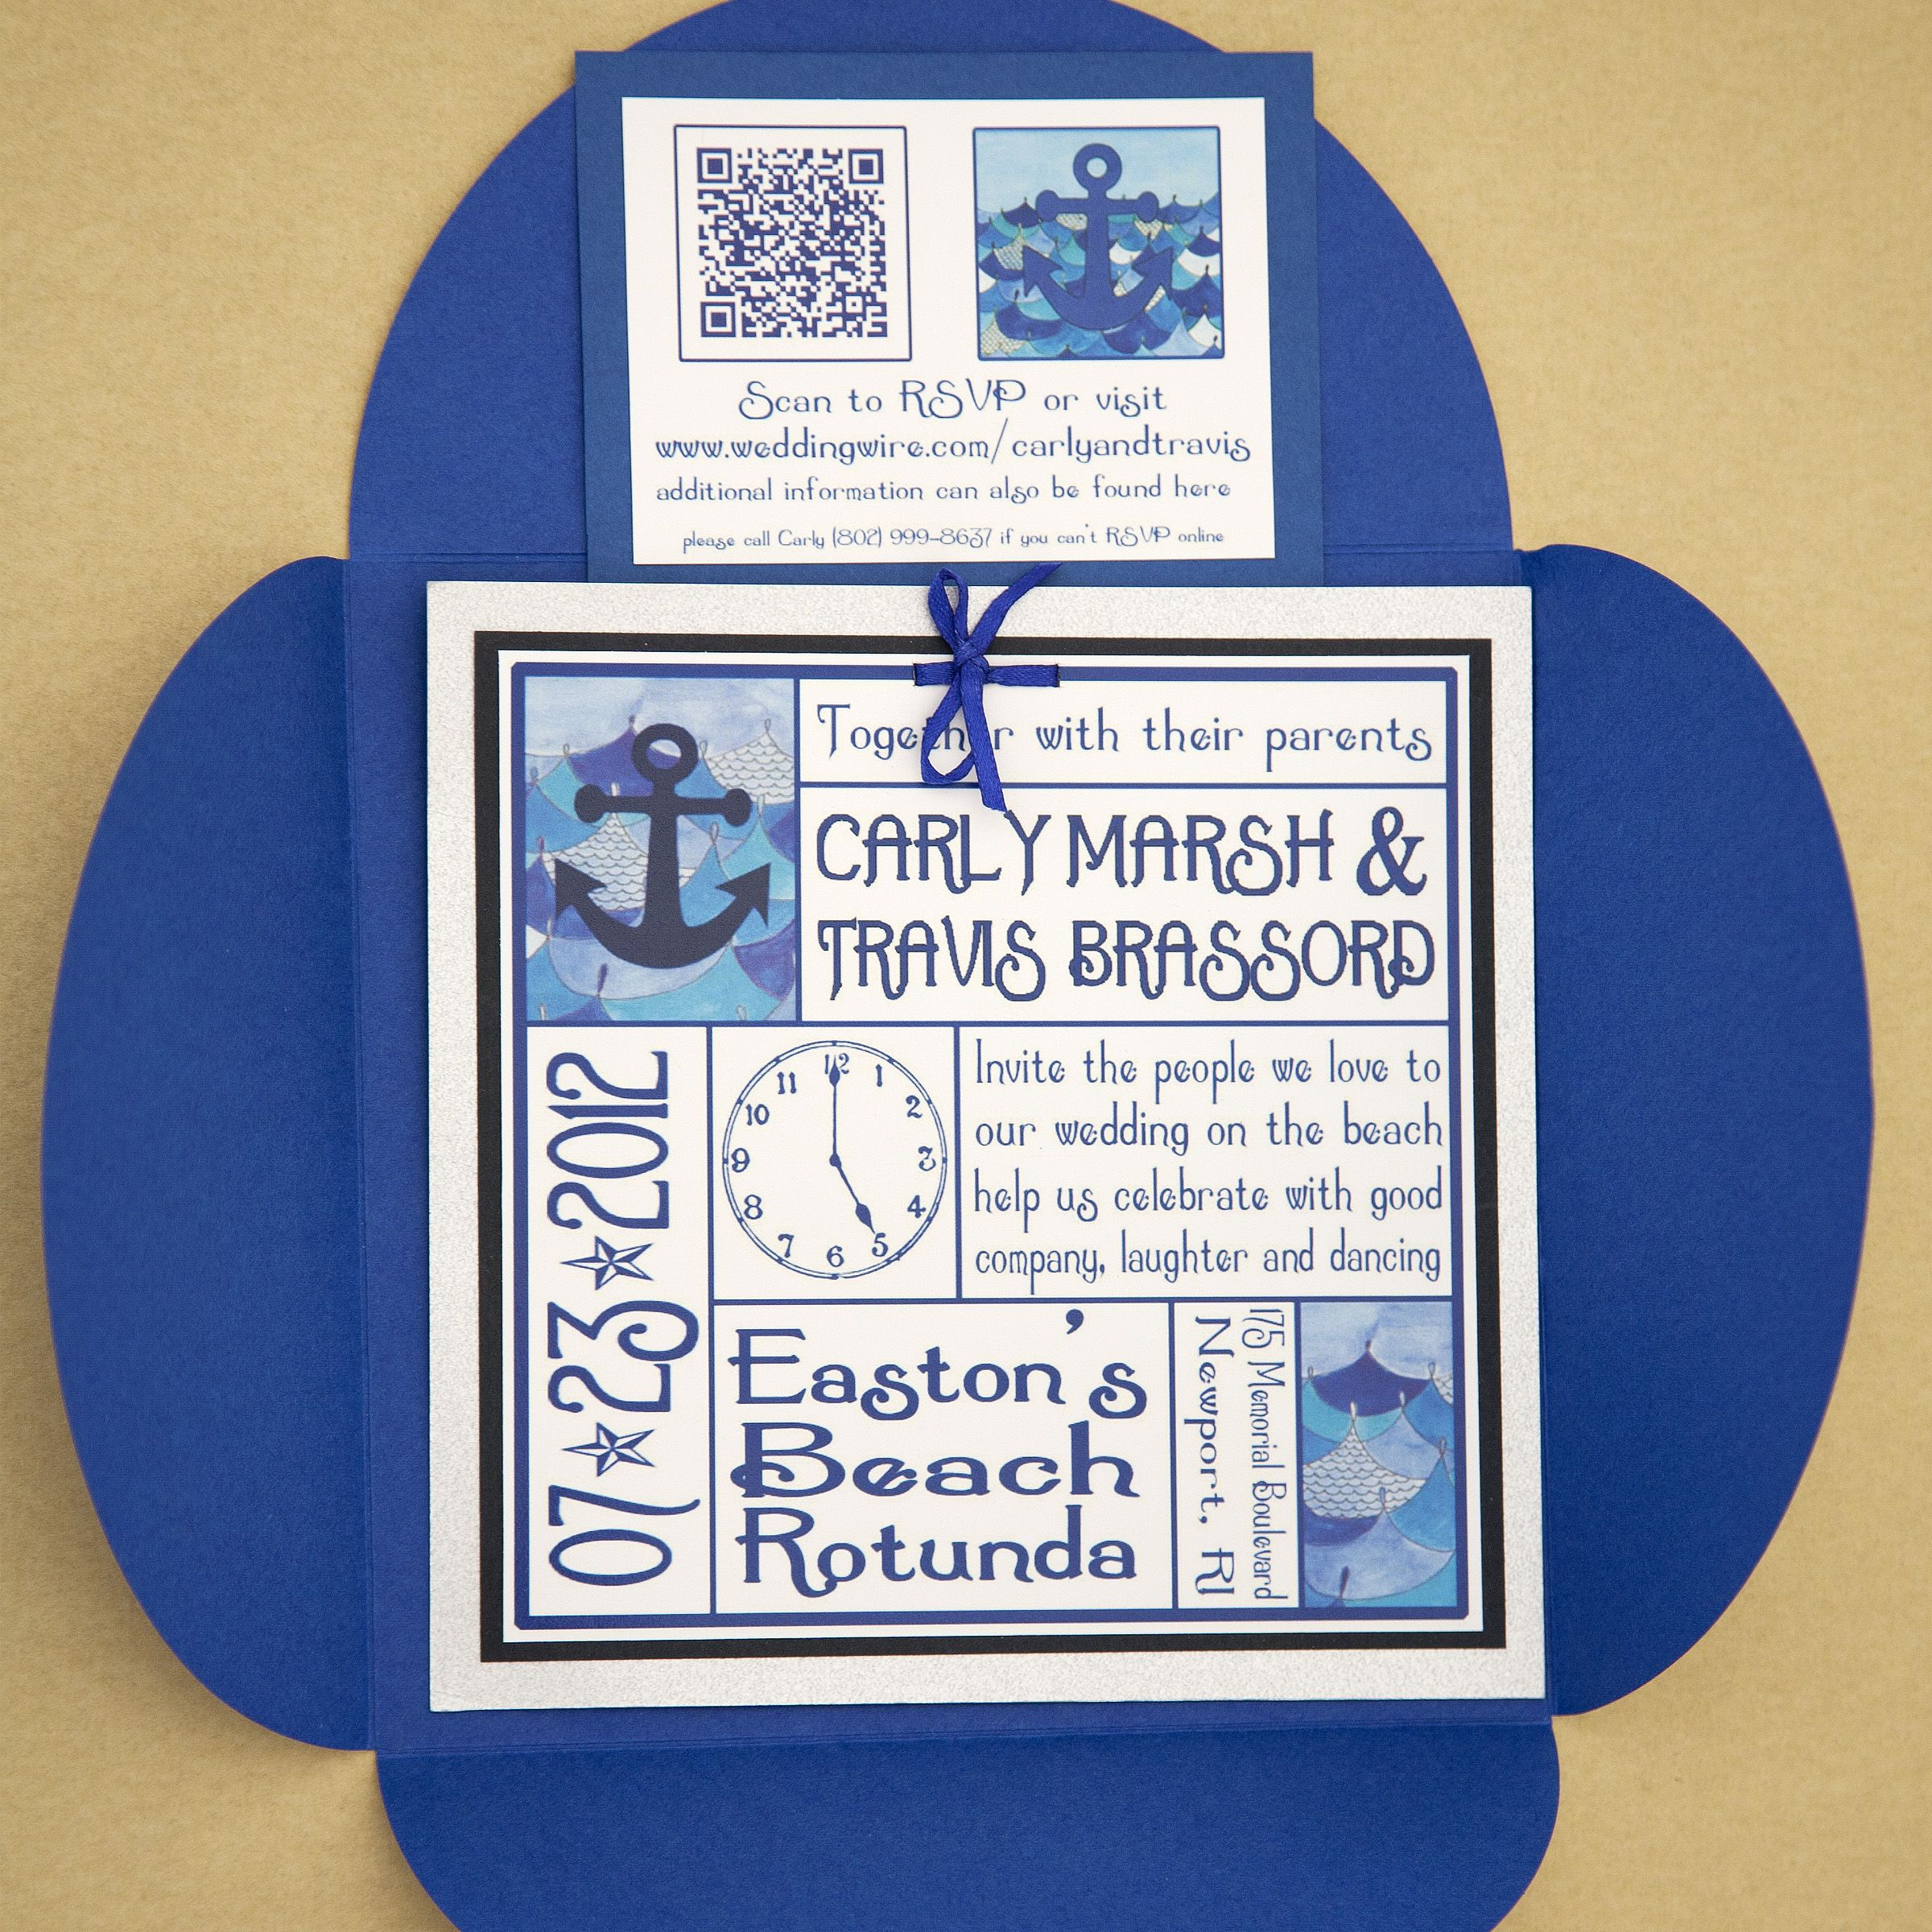 B Wedding Invitations Coupons: Wedding Invitations With A QR Code For RSVP! Your Guests